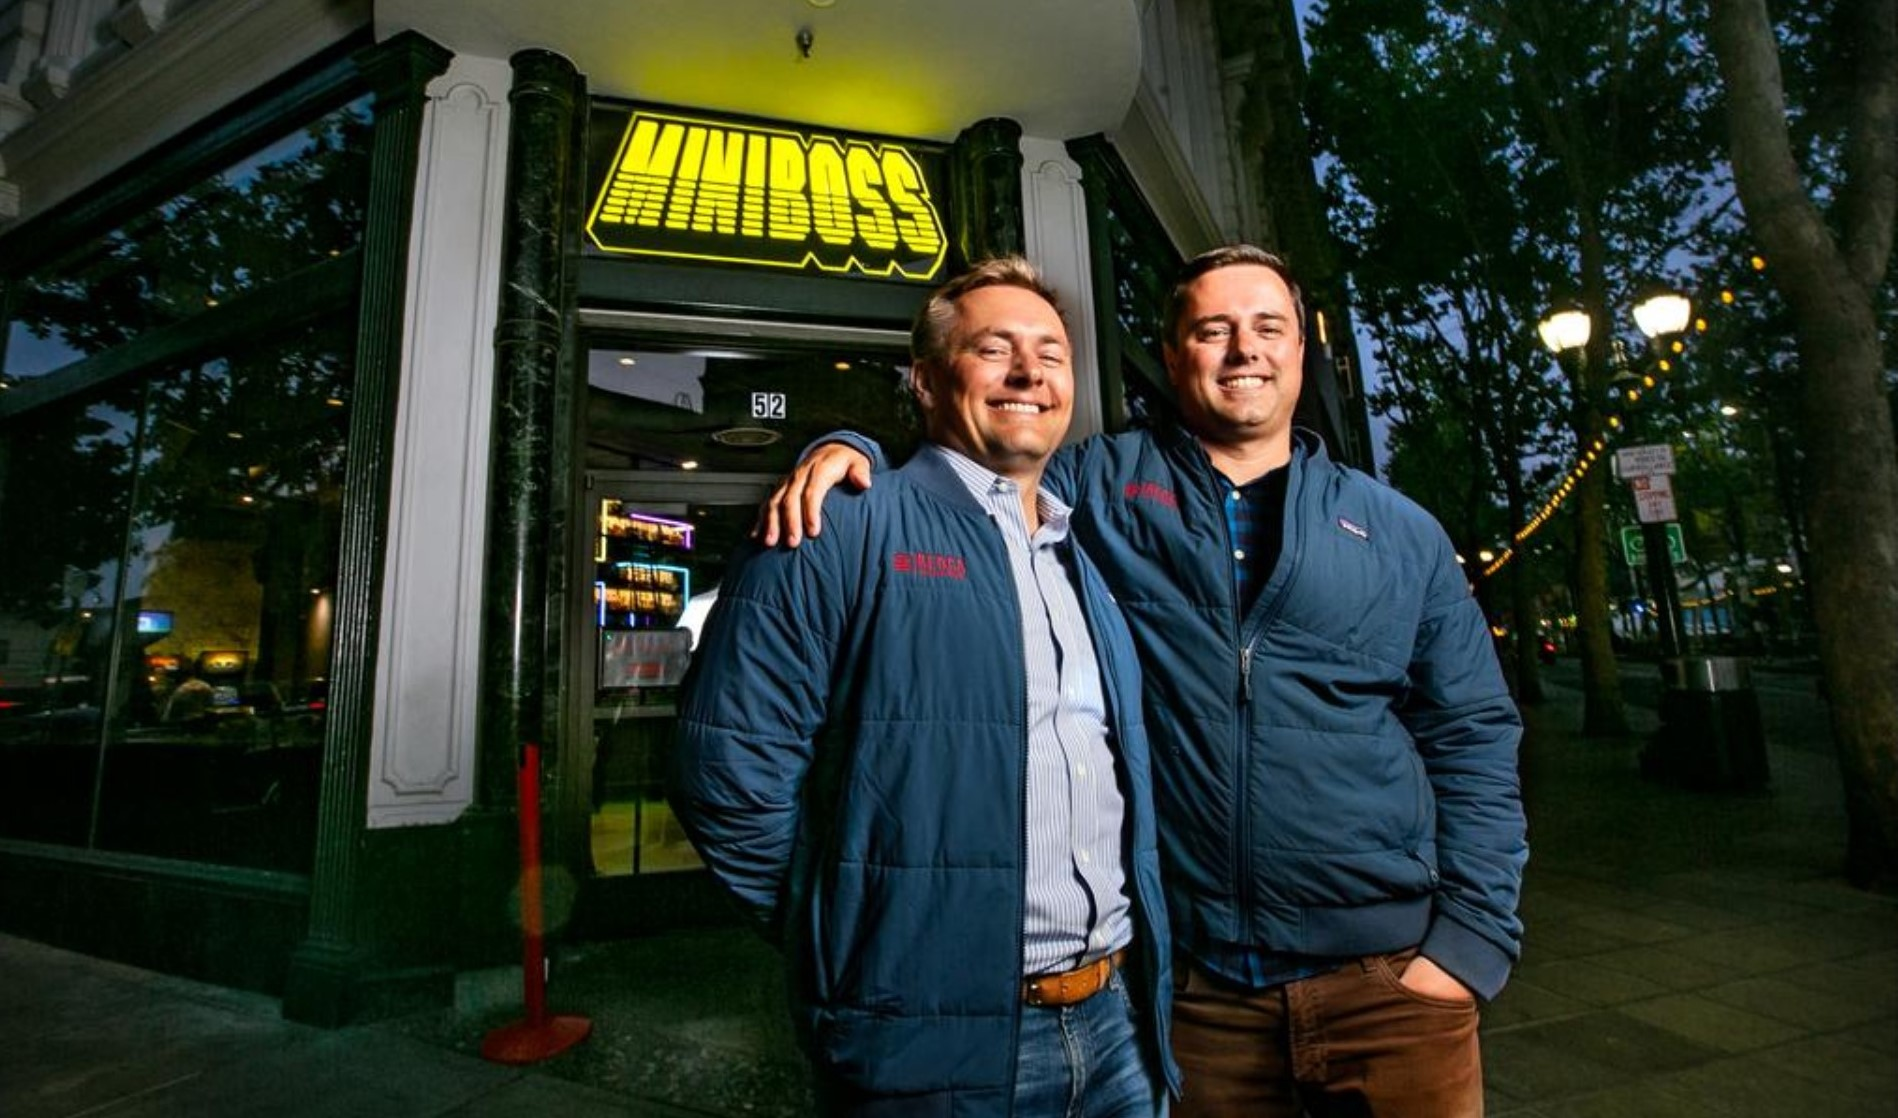 From left, brothers Jason and Chris Freise of REDCO Development in front of MiniBoss, a new bar and arcade that was one of Chris' pet projects until Lift Partners sold the property.